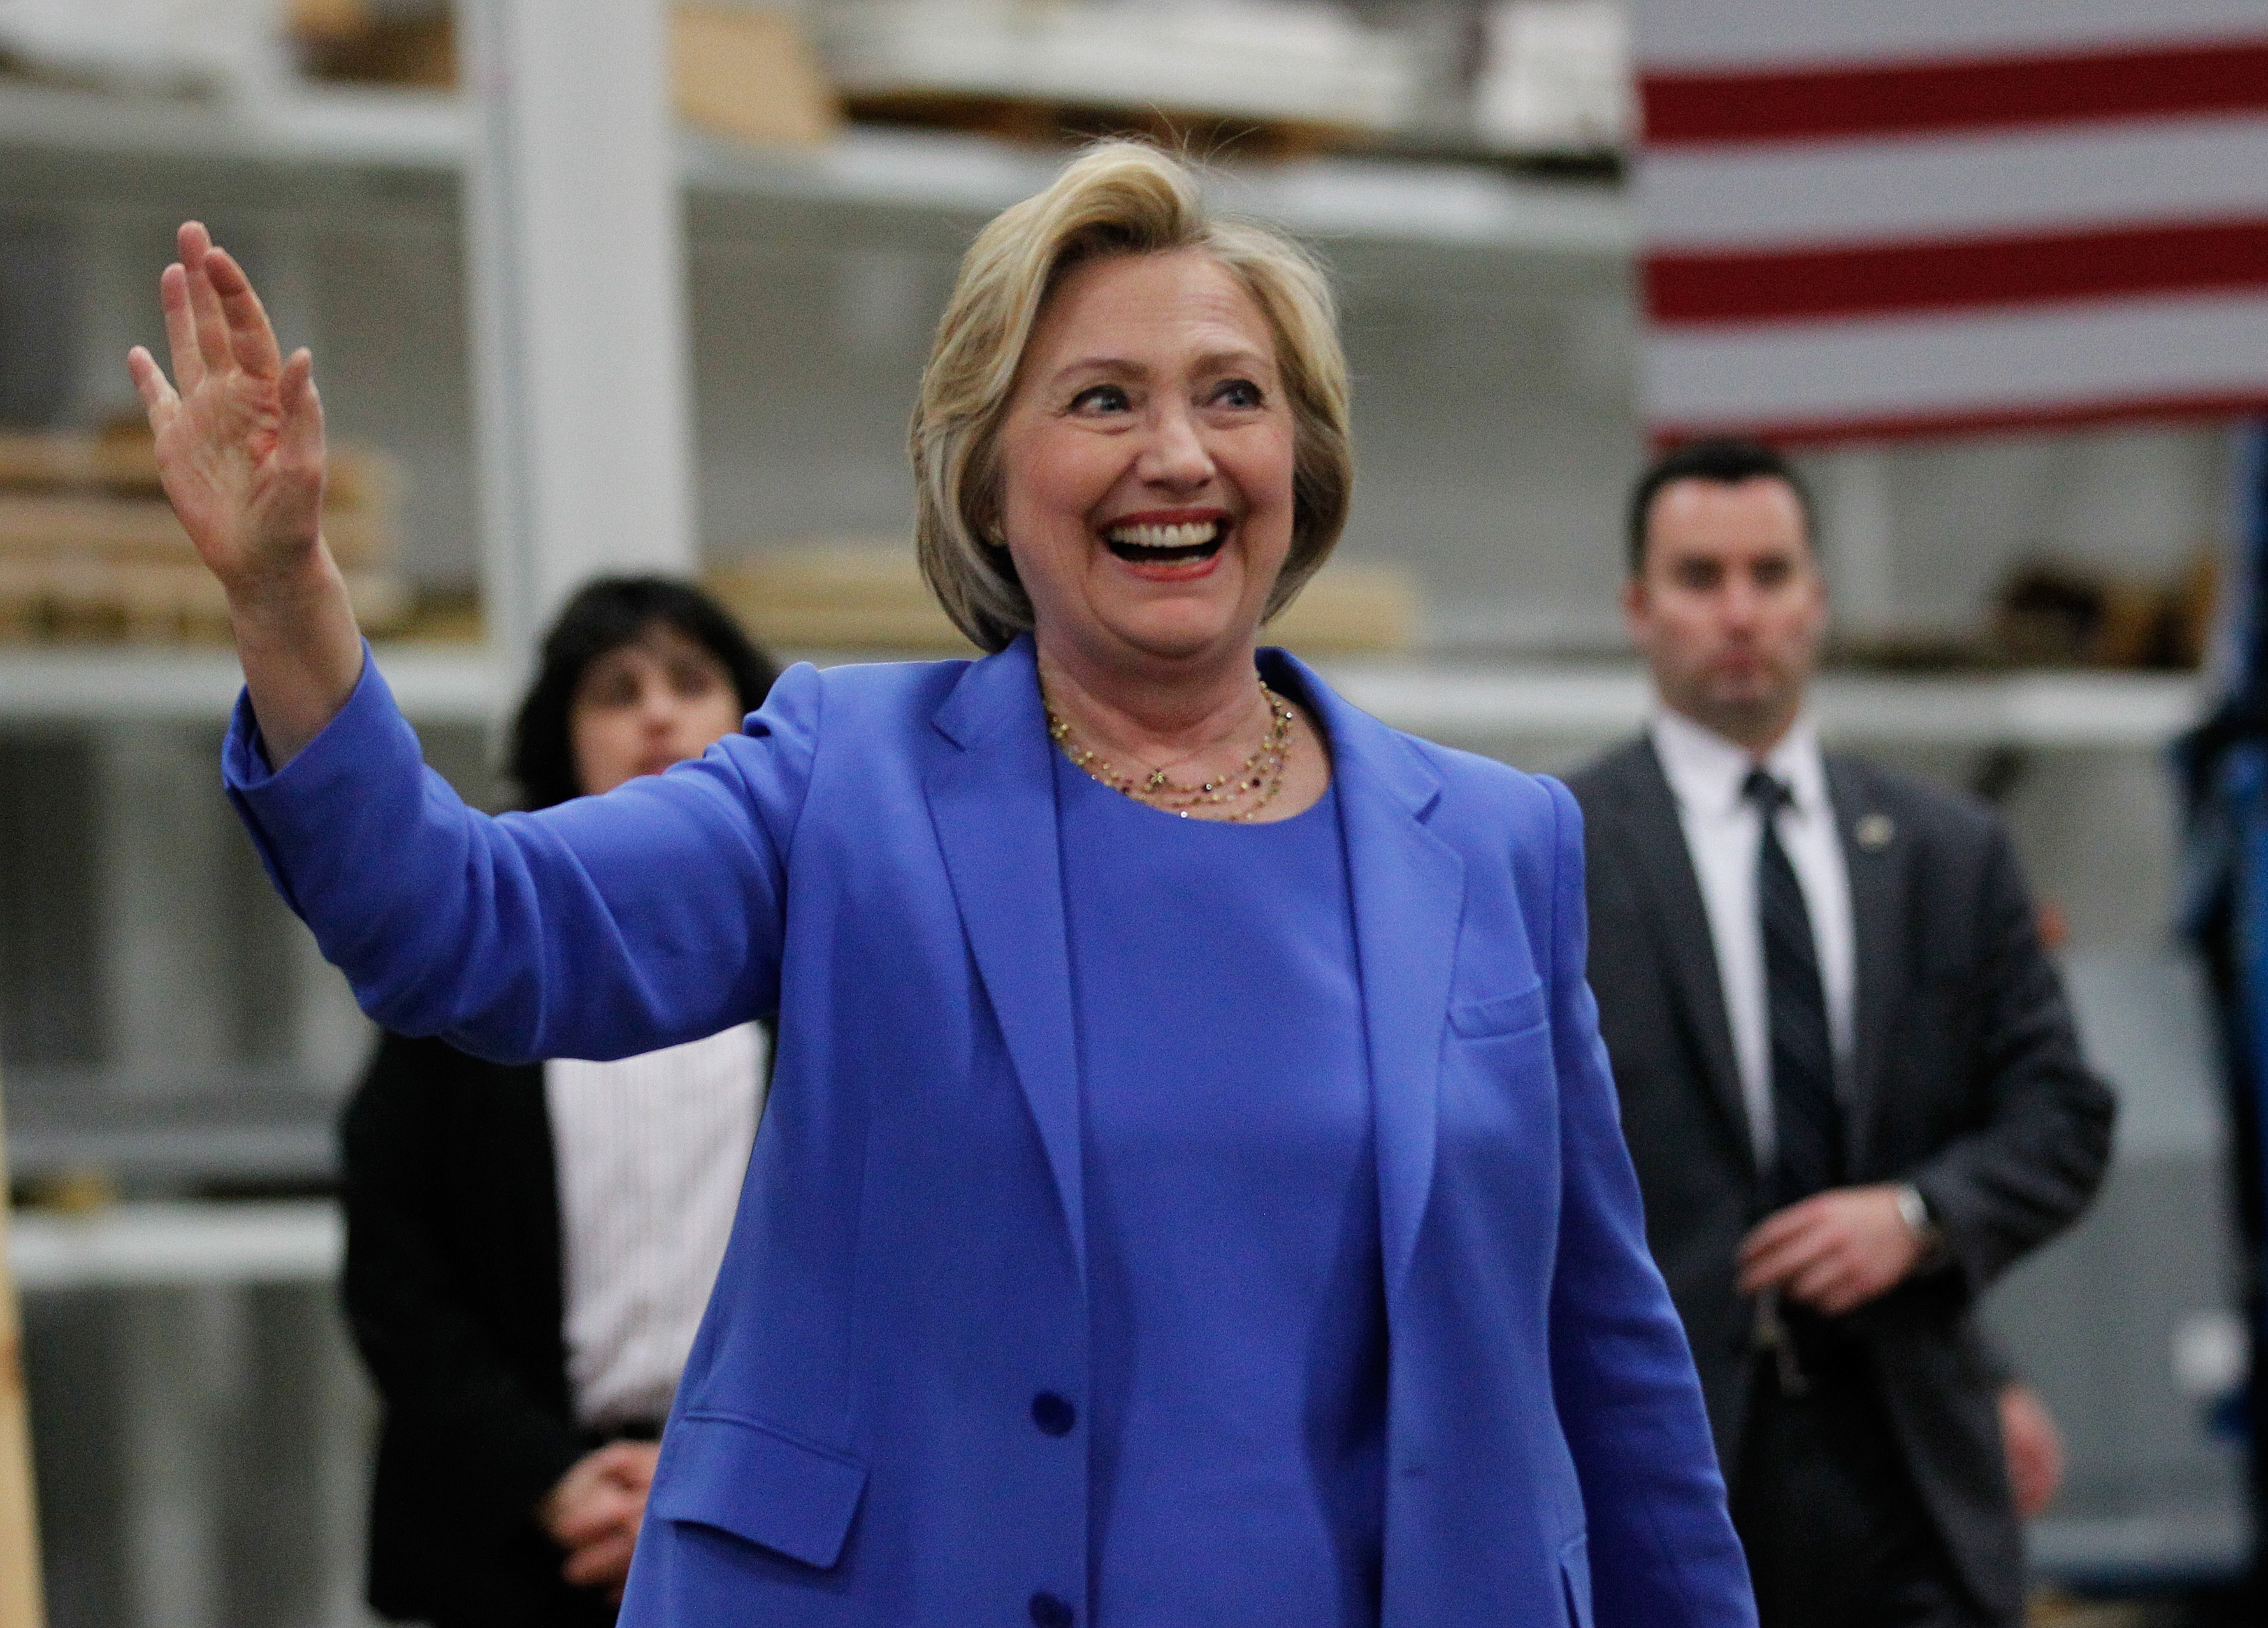 Democratic presidential candidate Hillary Clinton waves to the crowd during a campaign stop at the Union of Carpenters and Millwrights Training Center on May 15 in Louisville, Kentucky.